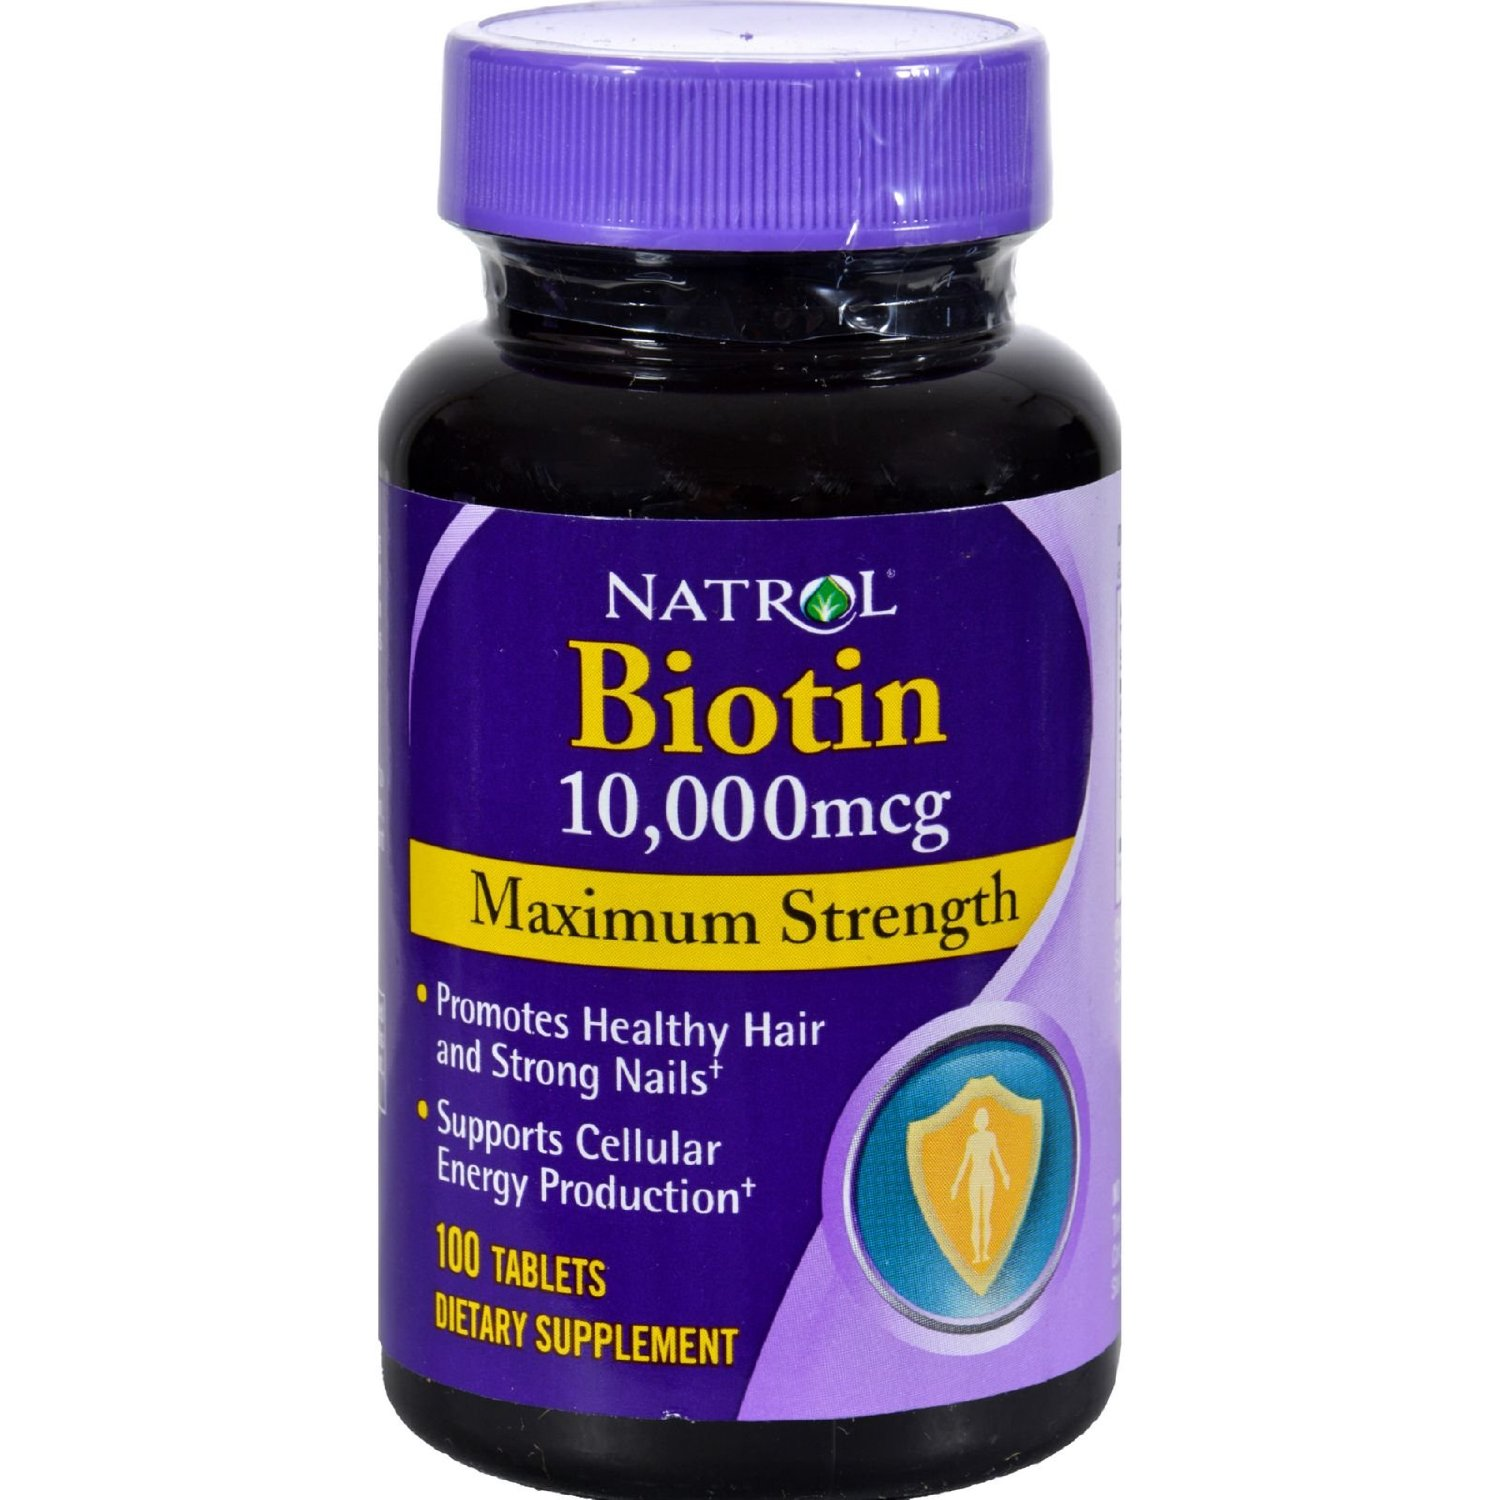 Natrol Biotin - 10000 mcg - 100 Tablets - Promotes Healthy Hair and Strong Nails - Supports Cellular Energy Production - Maximum Strength